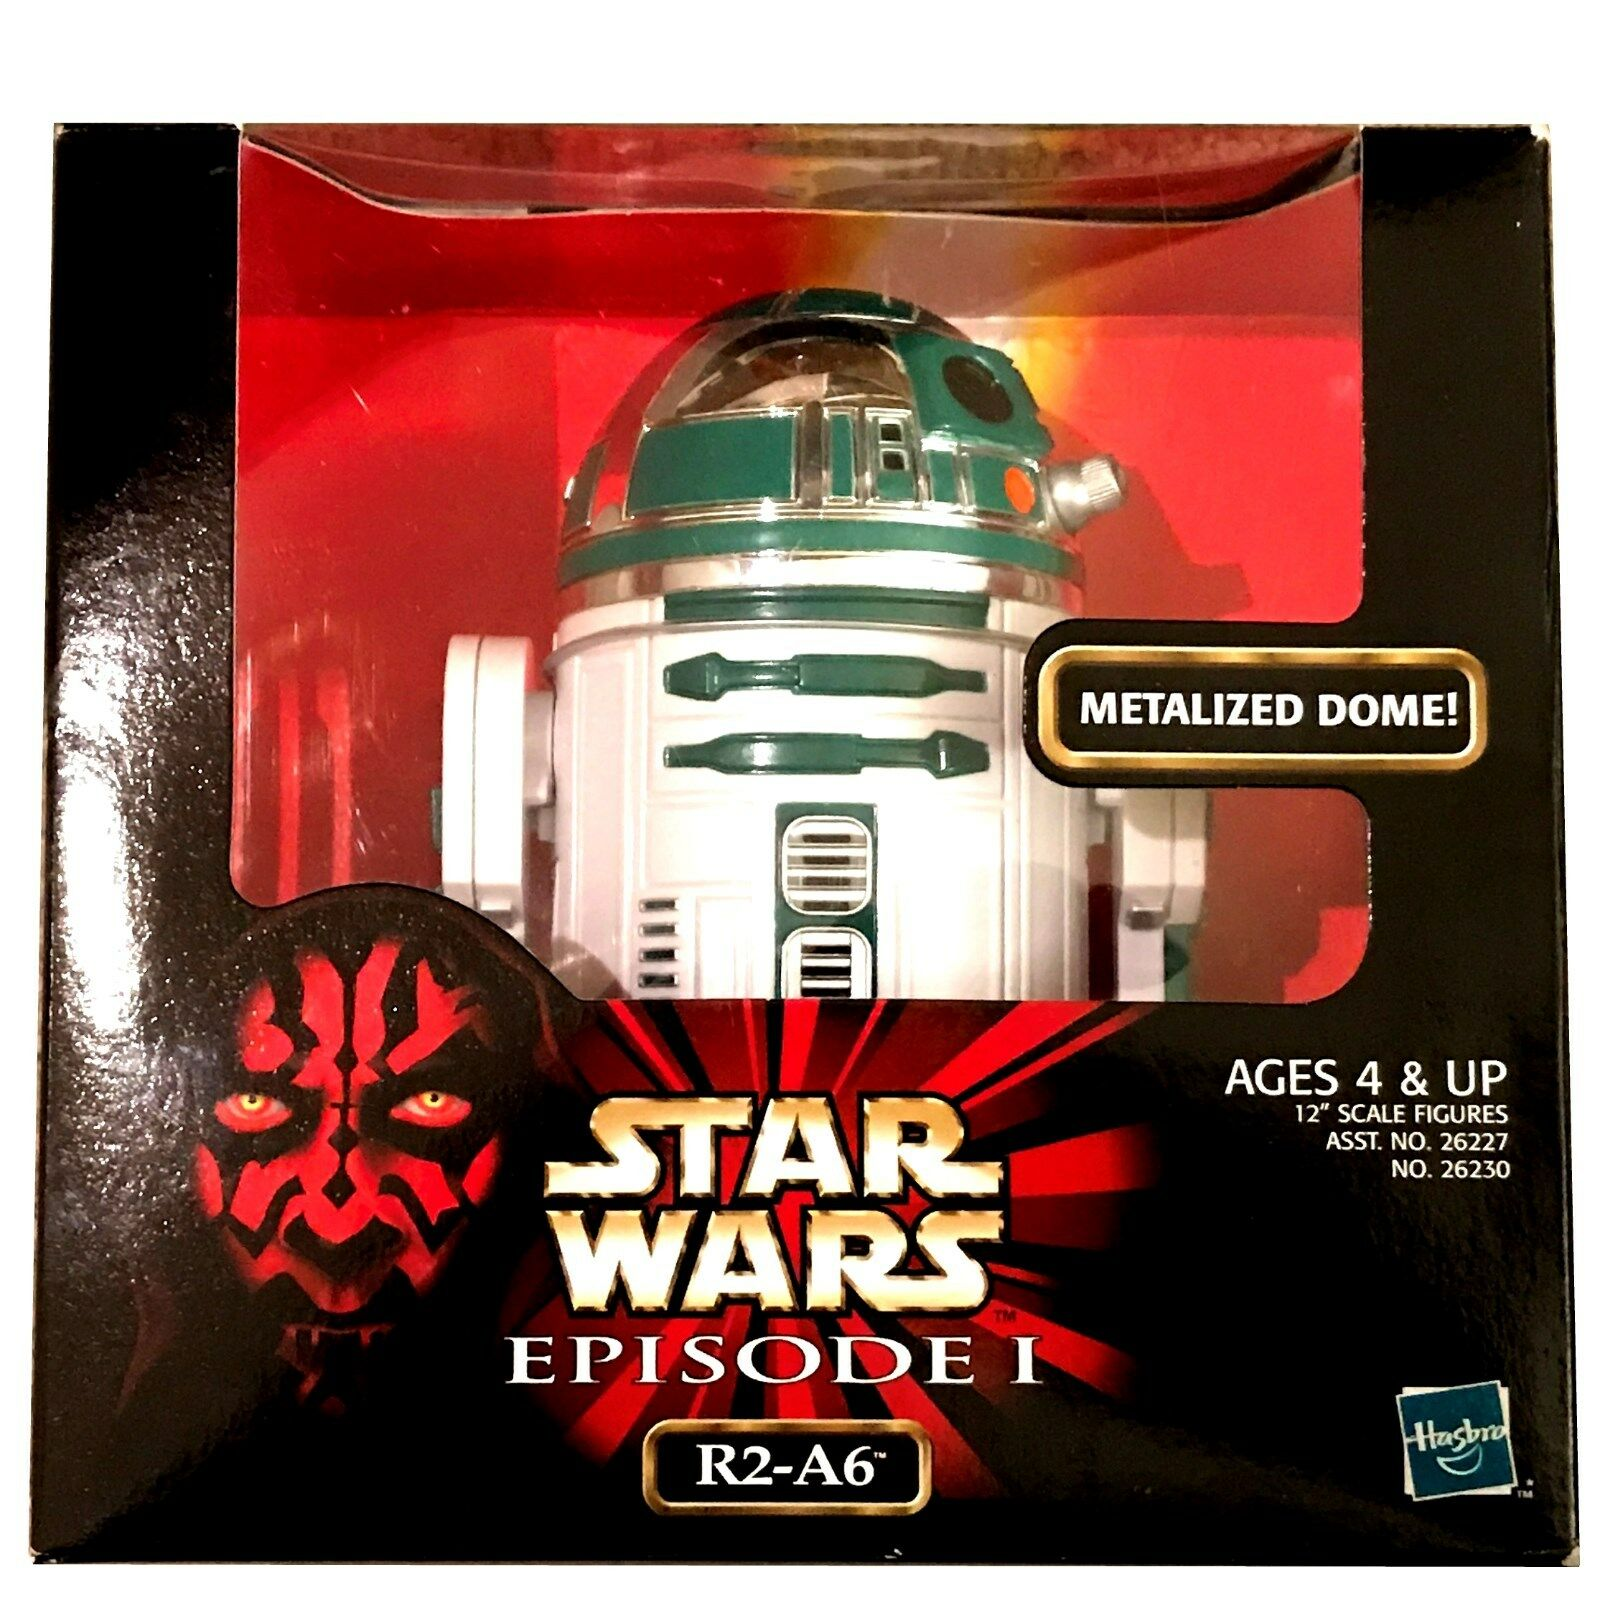 STAR WARS EPISODE I R2-A6 ACTION FIGURE, Mint in Box